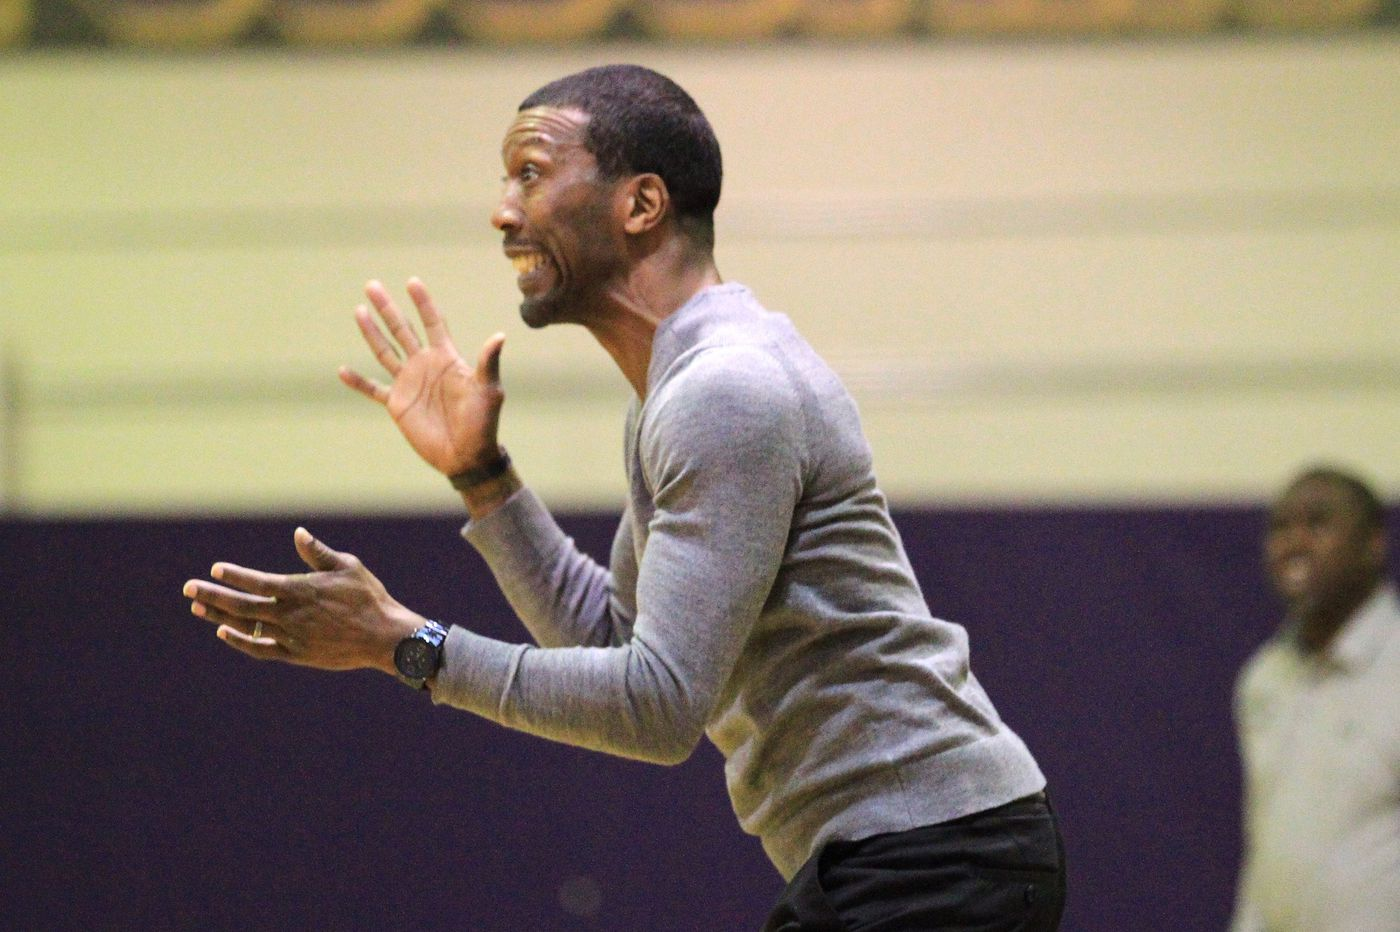 Another goal achieved for Martin Luther King hoops coach Sean Colson